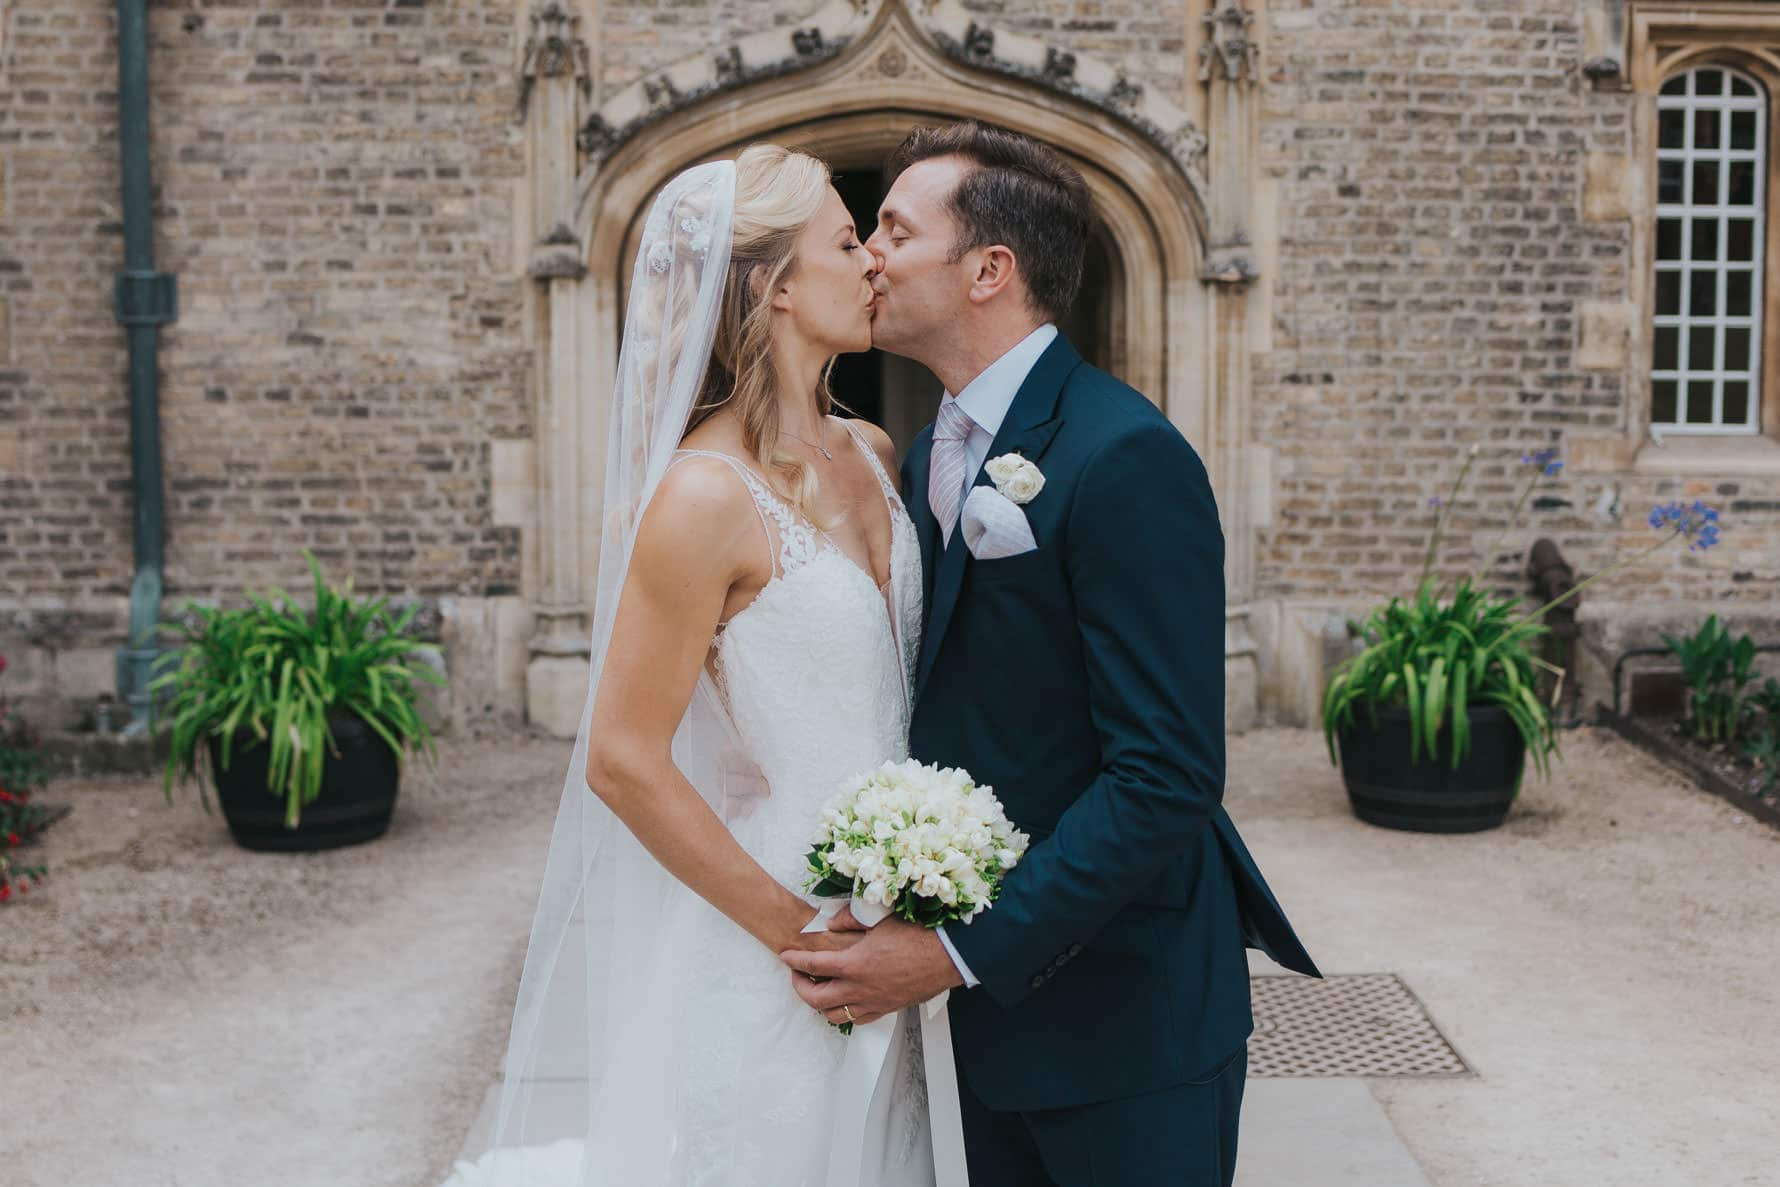 Bride and groom kissing for the first time